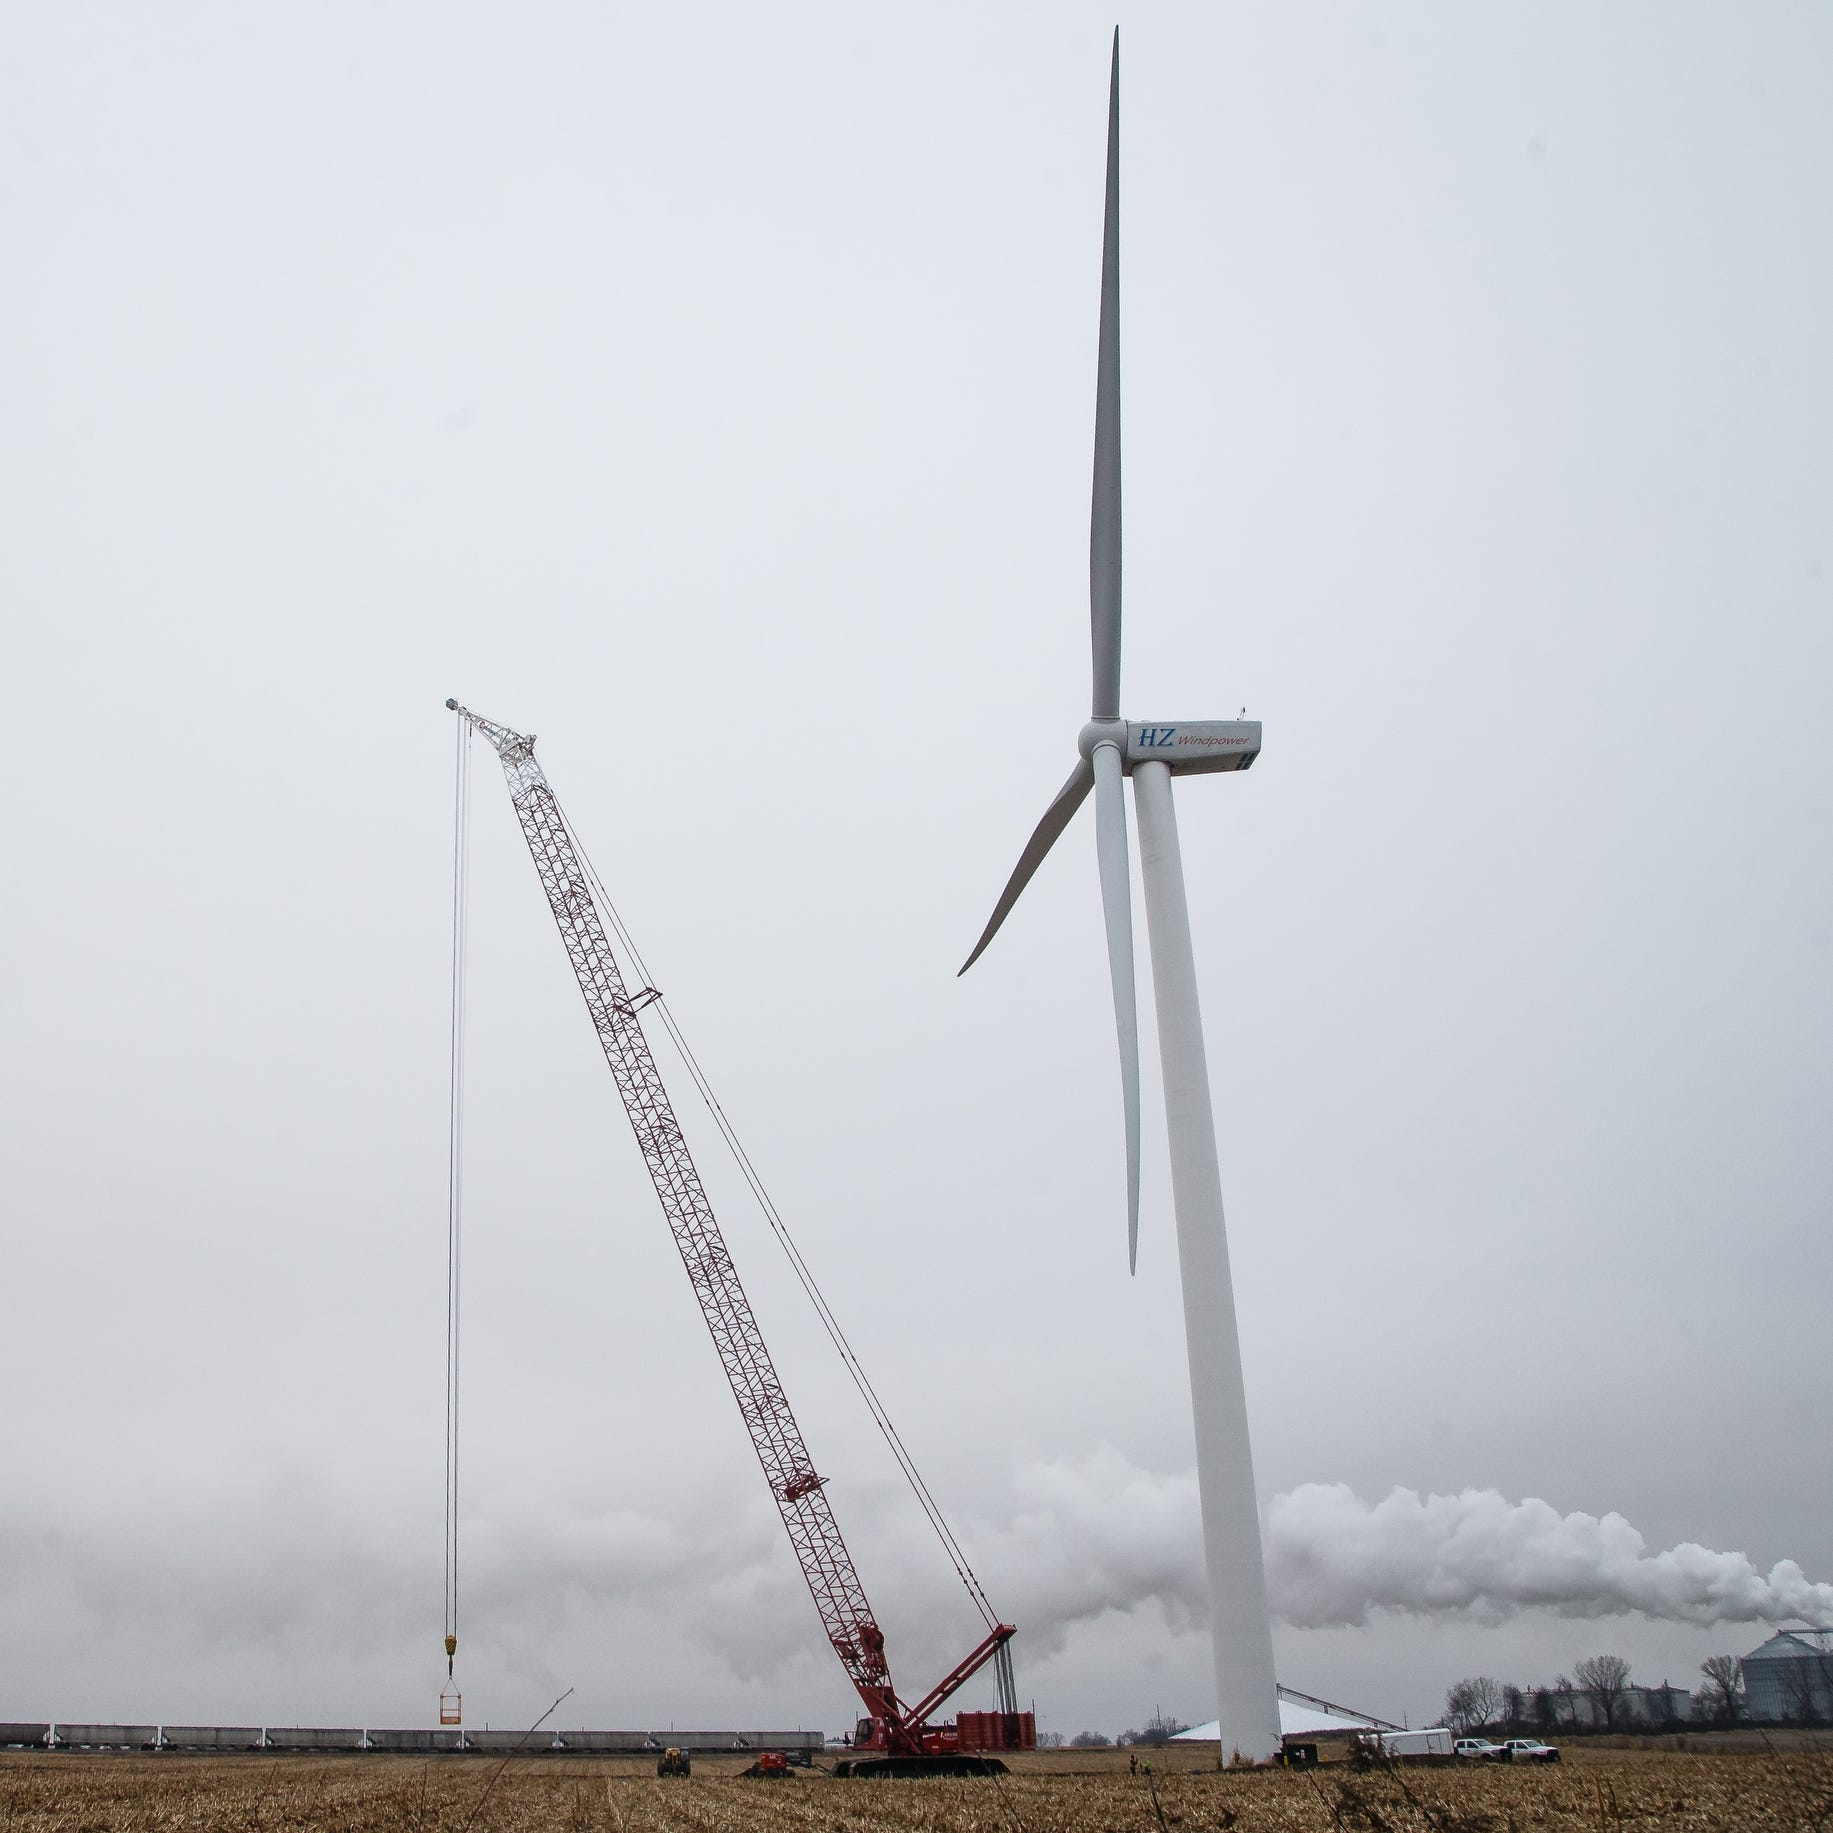 Iowa man loses legal bid to block $120 million wind energy project